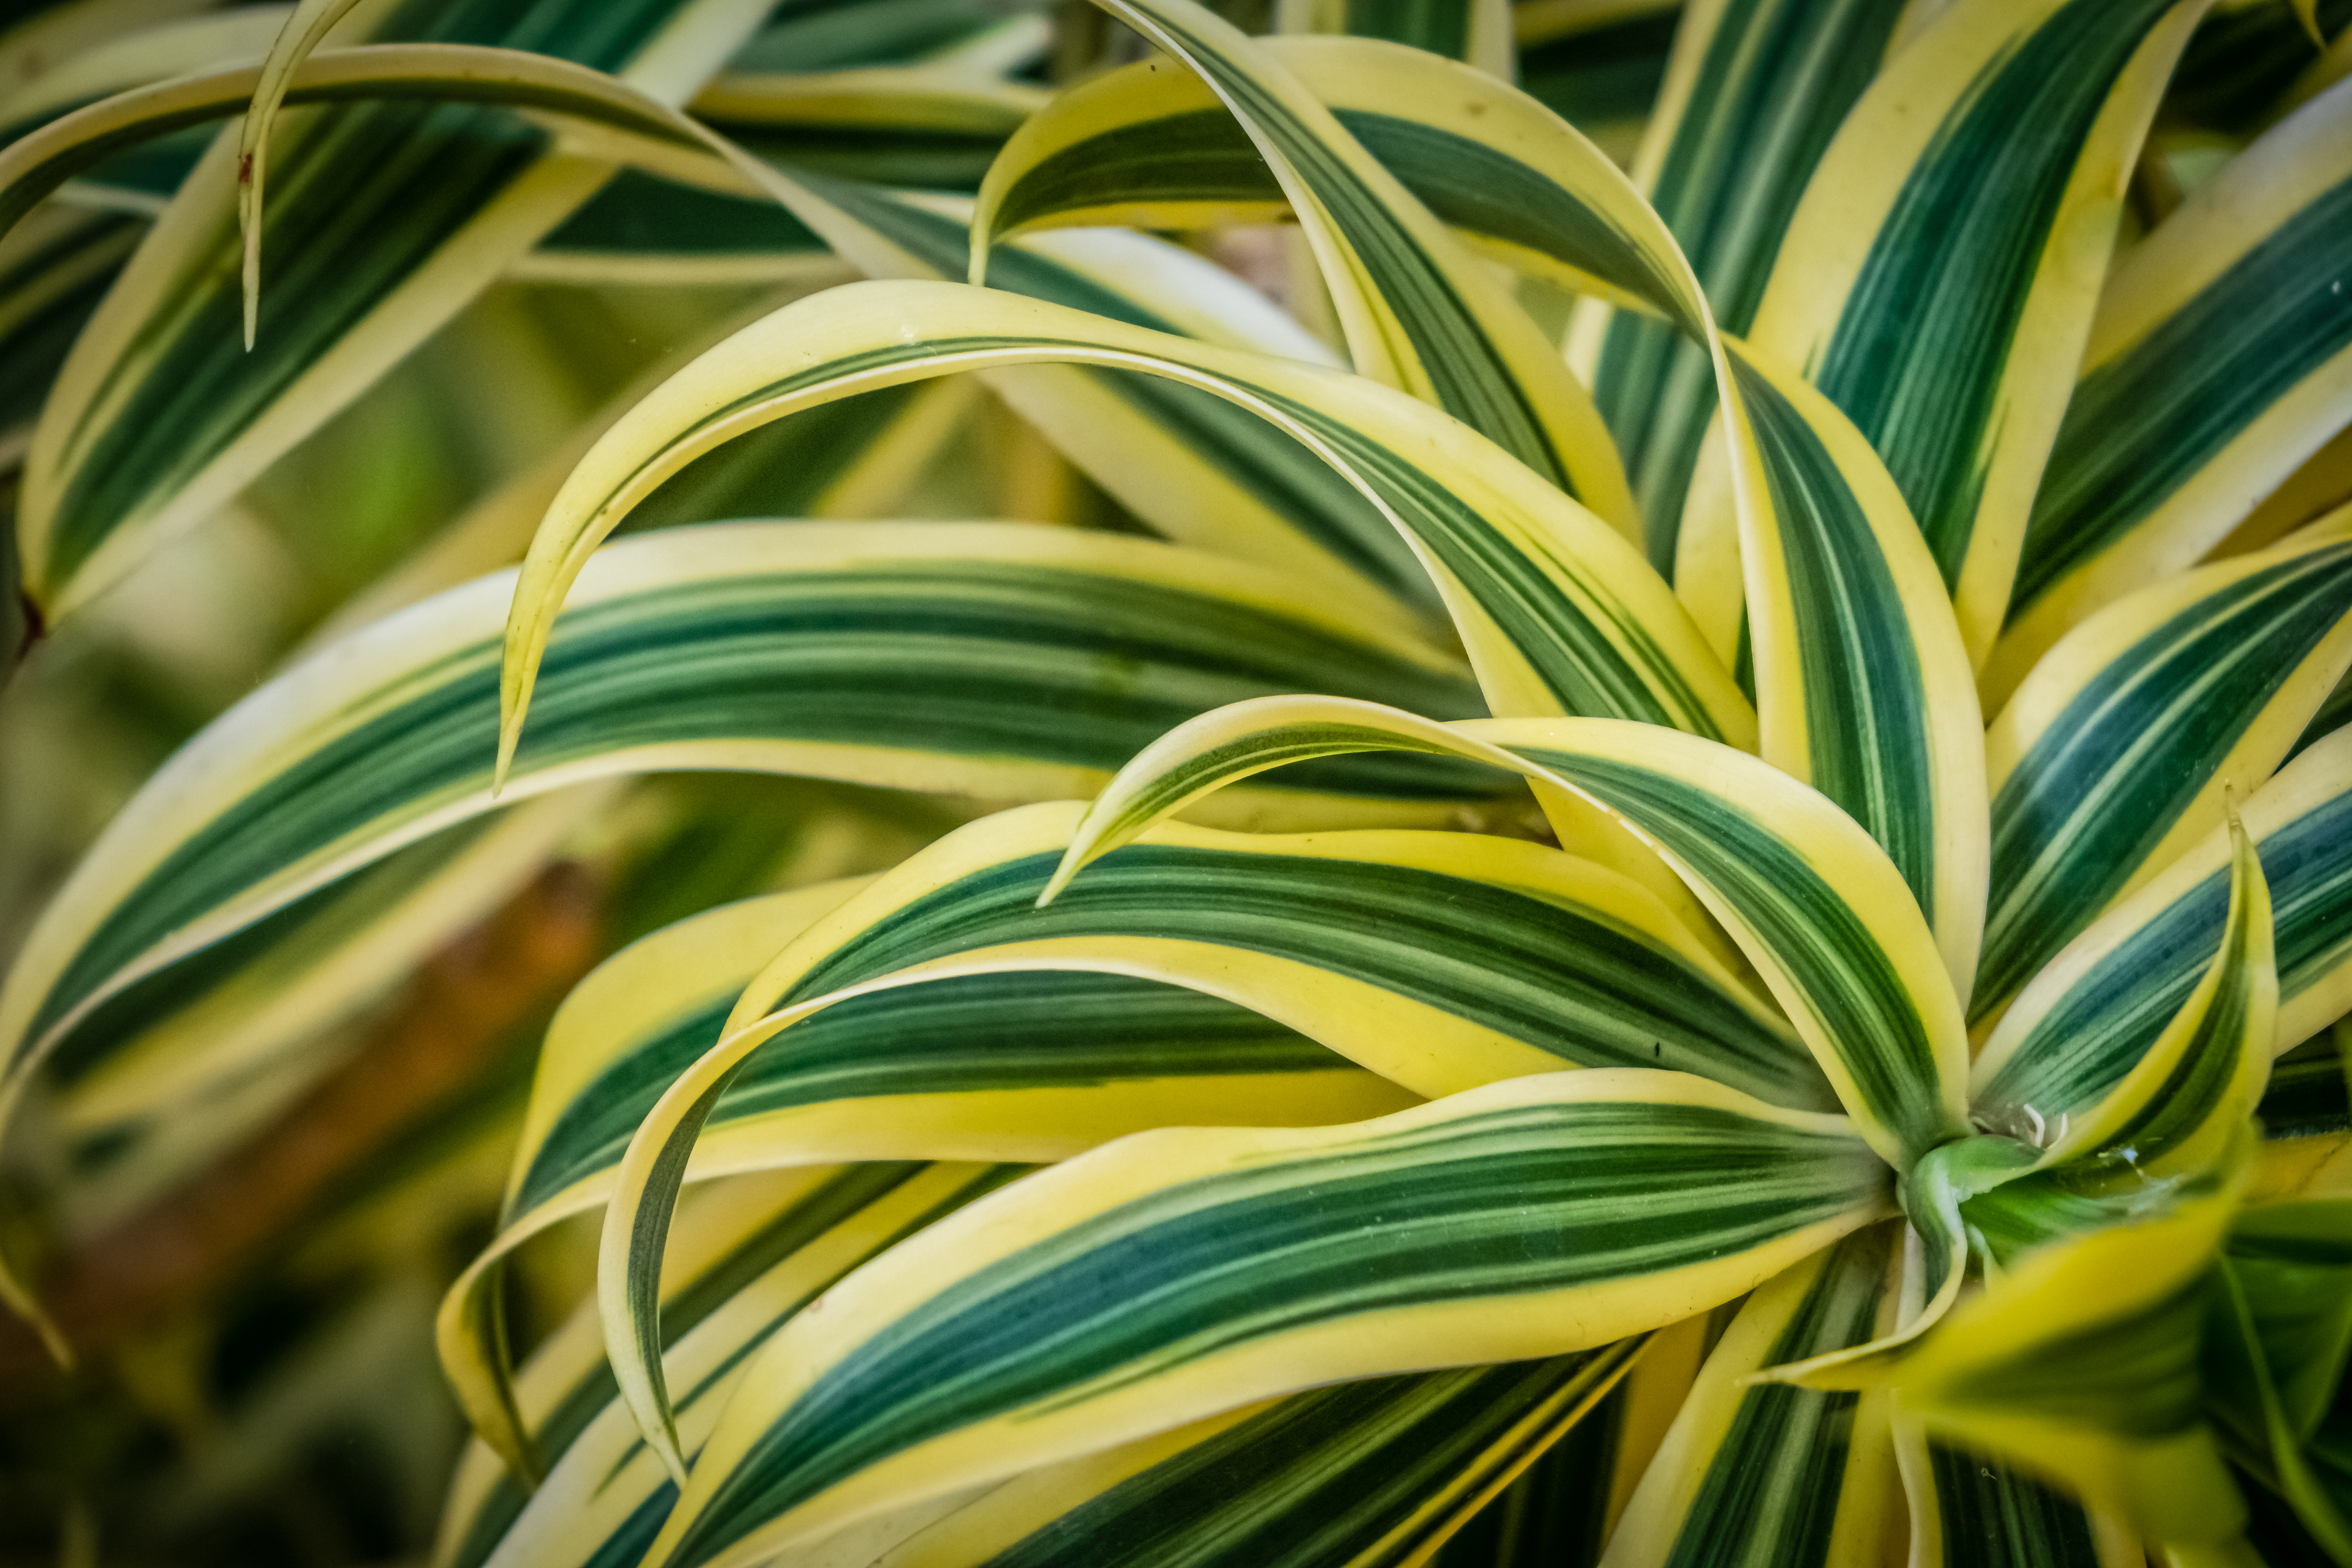 How to Plant Dracaena Outdoors | Home Guides | SF Gate